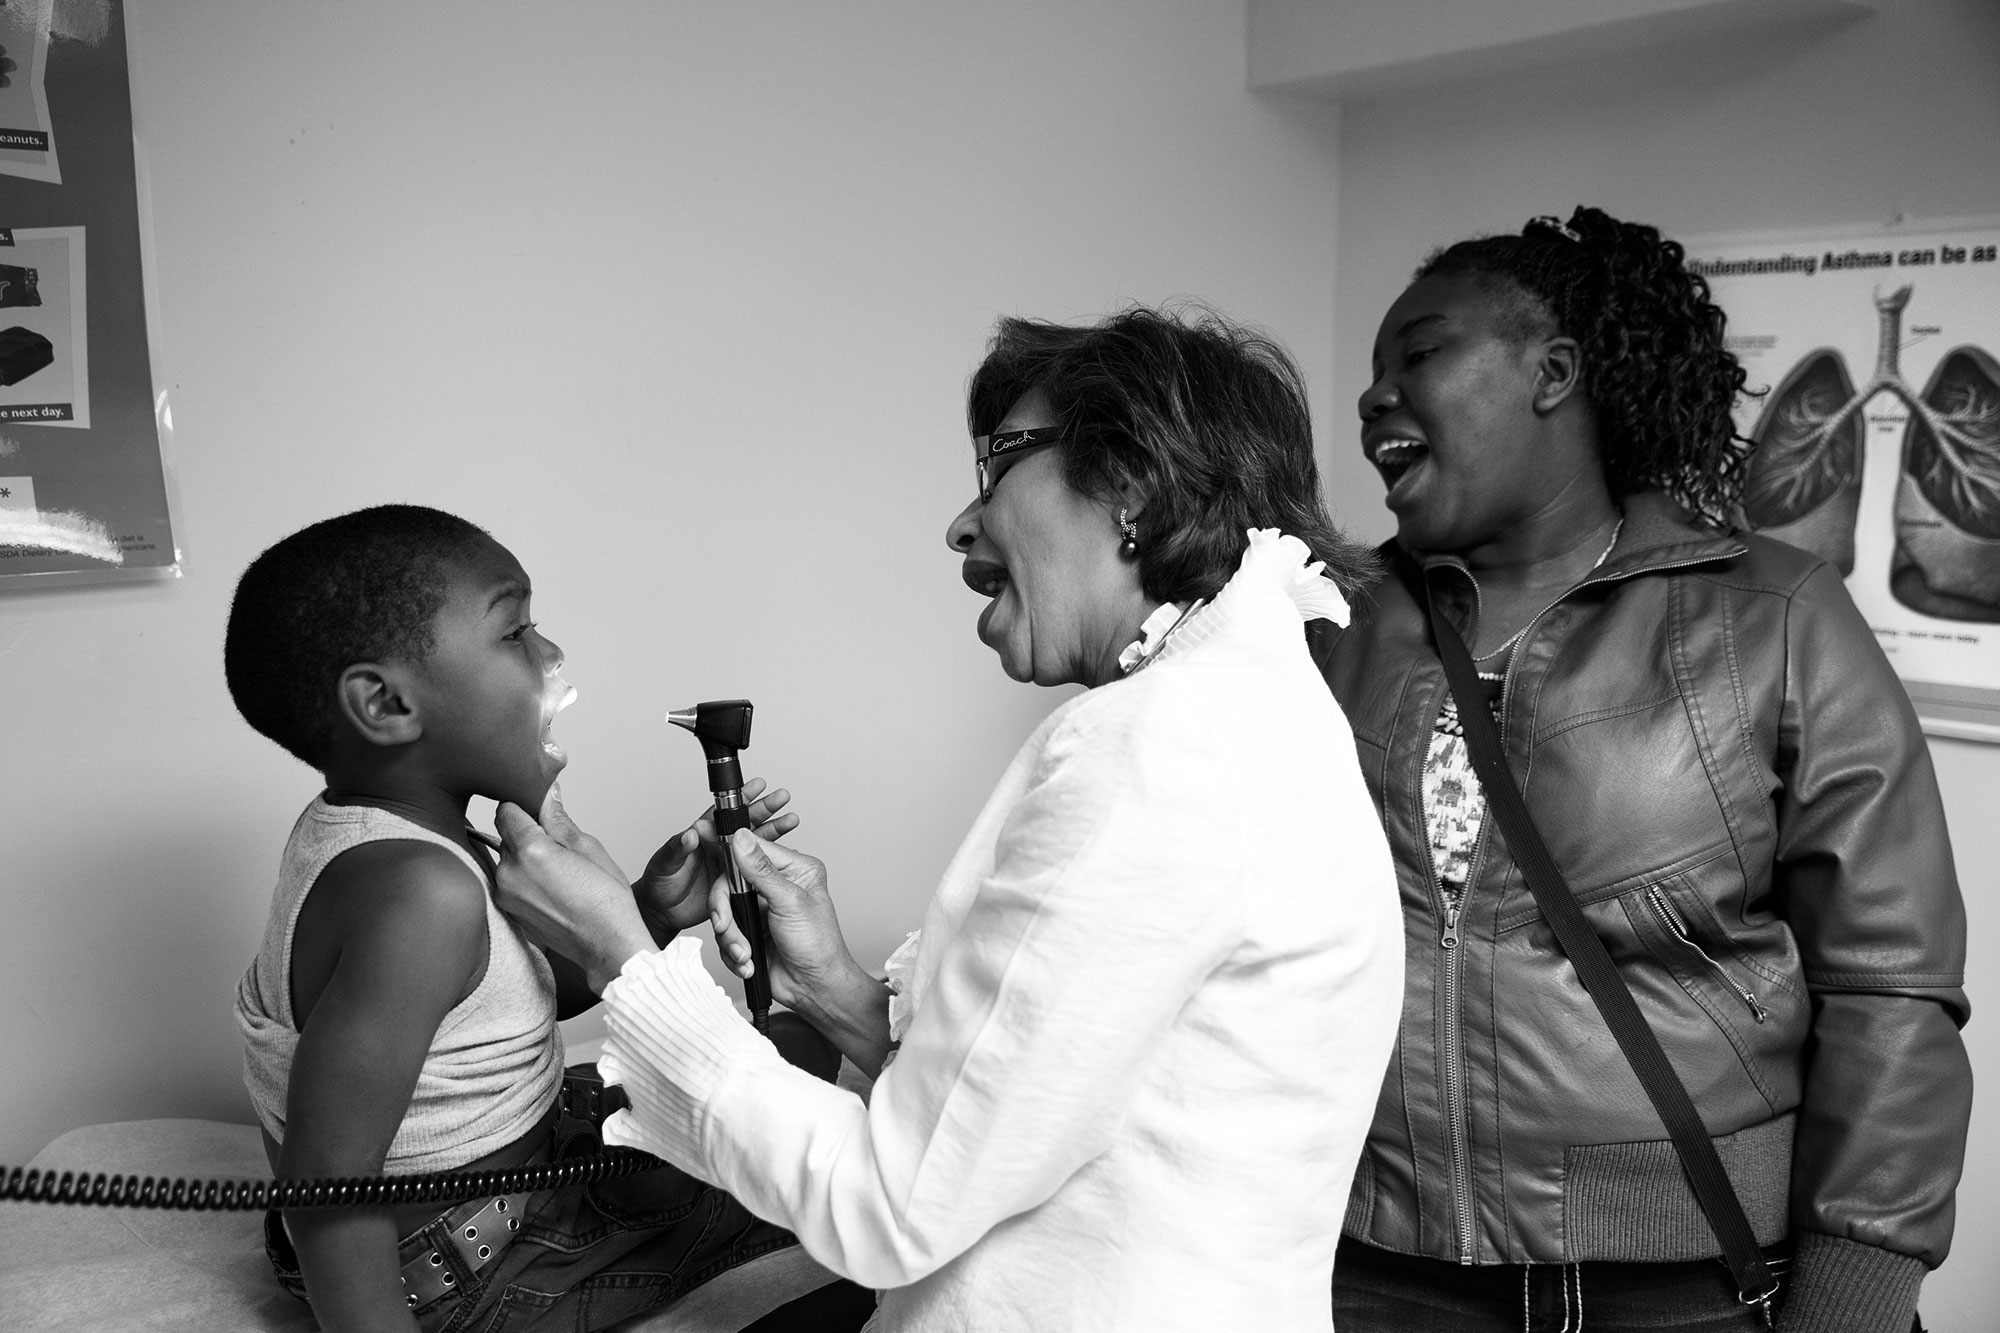 Asthma patient Onilson Avila Dionicio, 4, is examined by Dr. Mohammad while his mother watches.